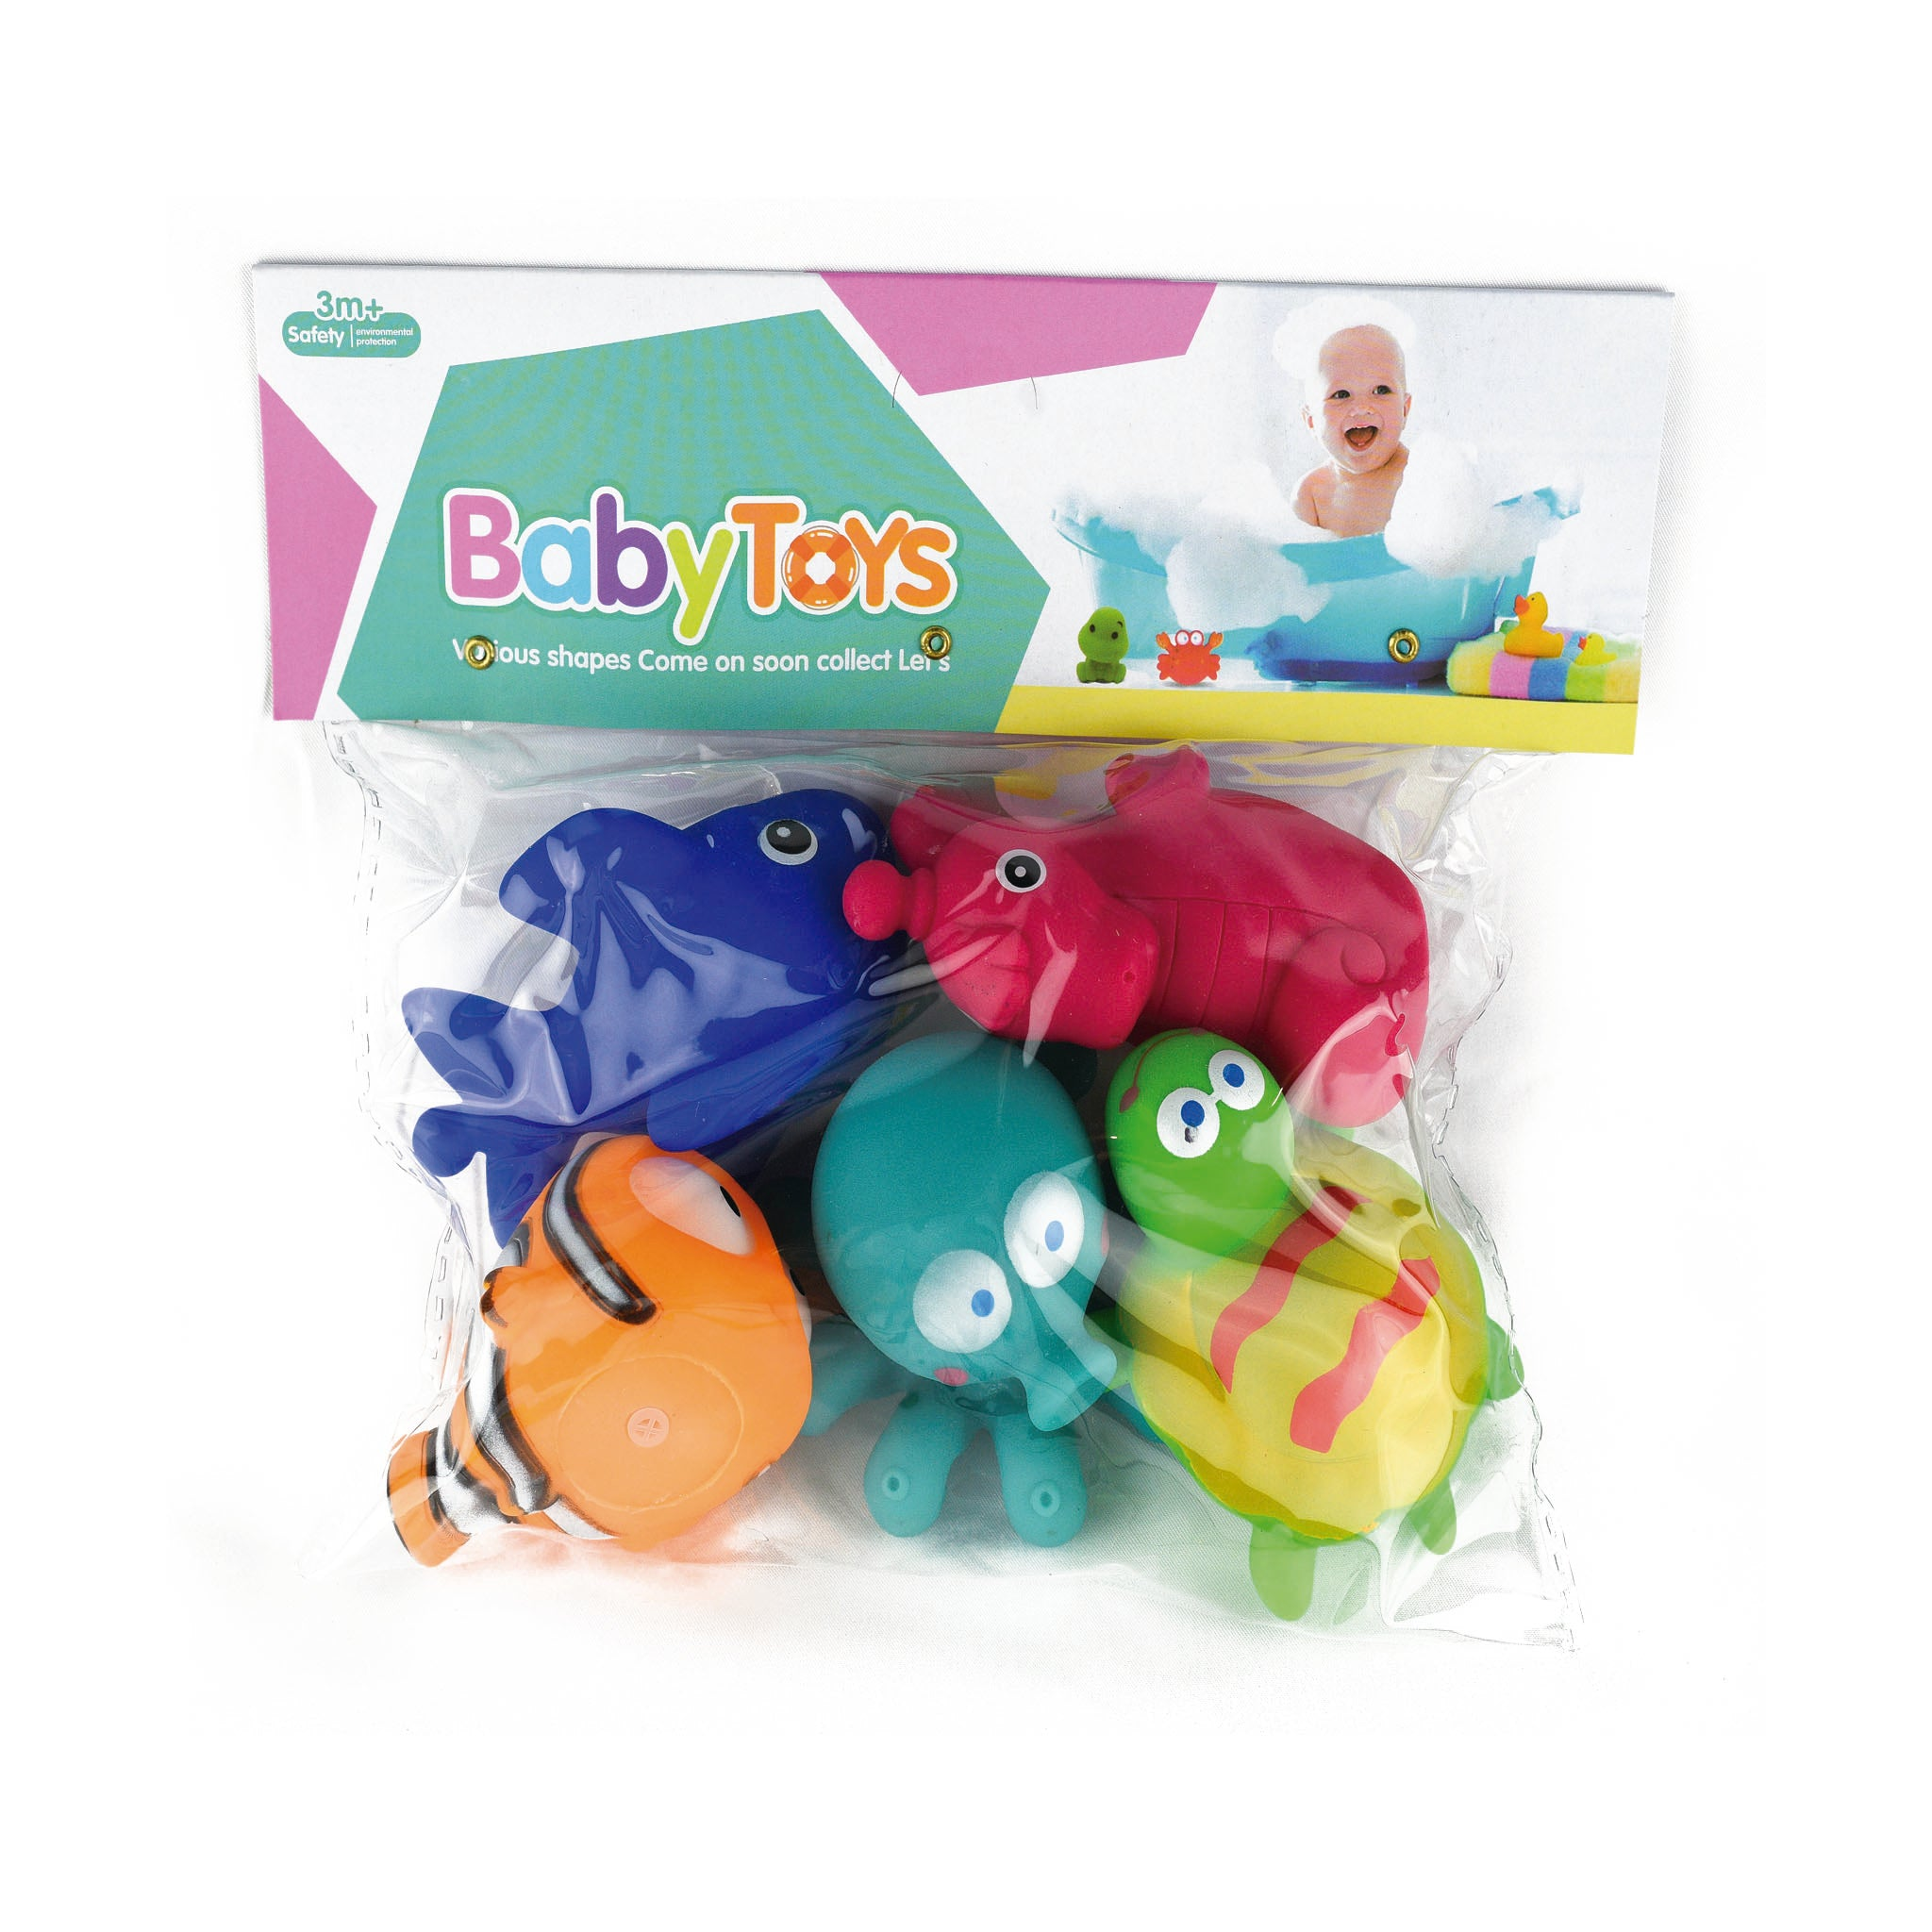 Baby bath toys 5 in 1 - Jubilofun